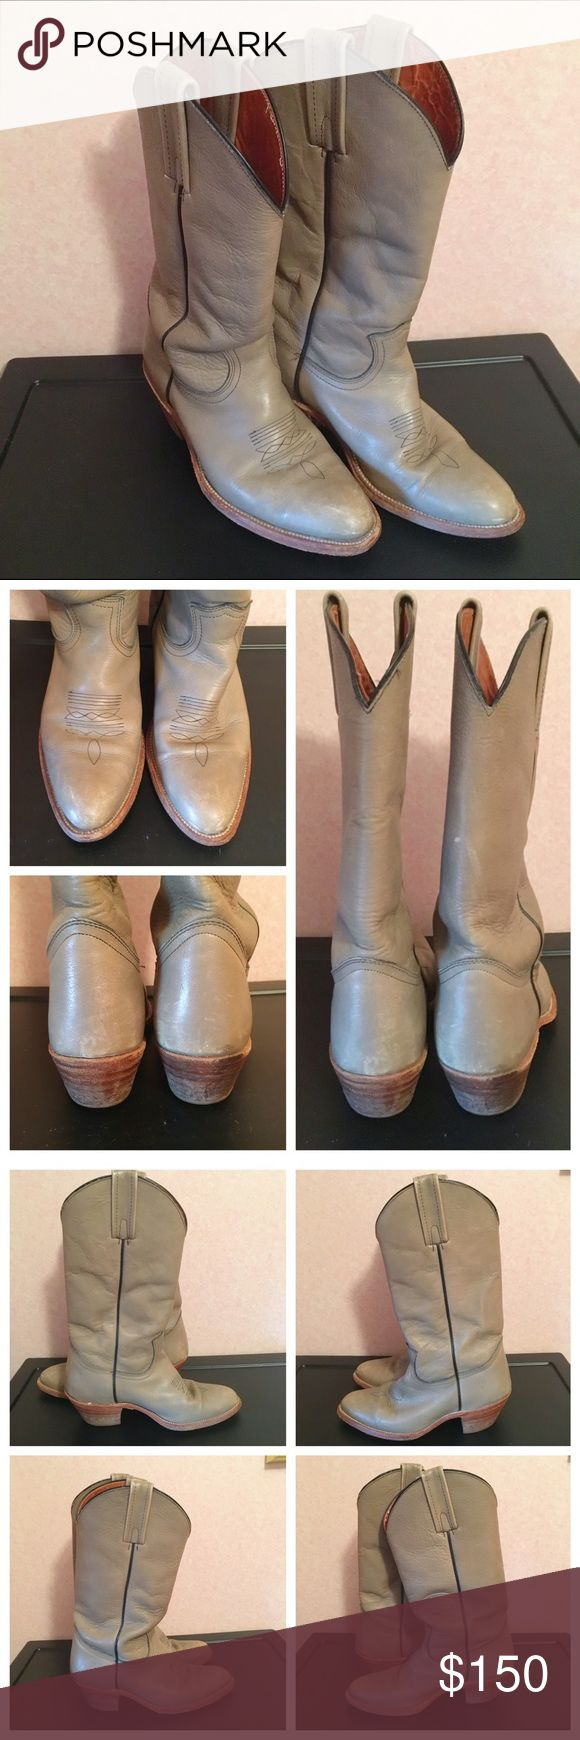 Frye Cowboy Boots Frye cowboy boots in good condition. Some scuffing on soles and some scuffing/wear on outside of boots. Note these are a wide (D) size.  💸 Make an offer using the offer button! I accept all reasonable offers and am always willing to negotiate. 📦 I ship next day unless I'm out of town - I will let you know as soon as you purchase when I'll ship! 🚫 Sorry, I don't trade. Frye Shoes Heeled Boots